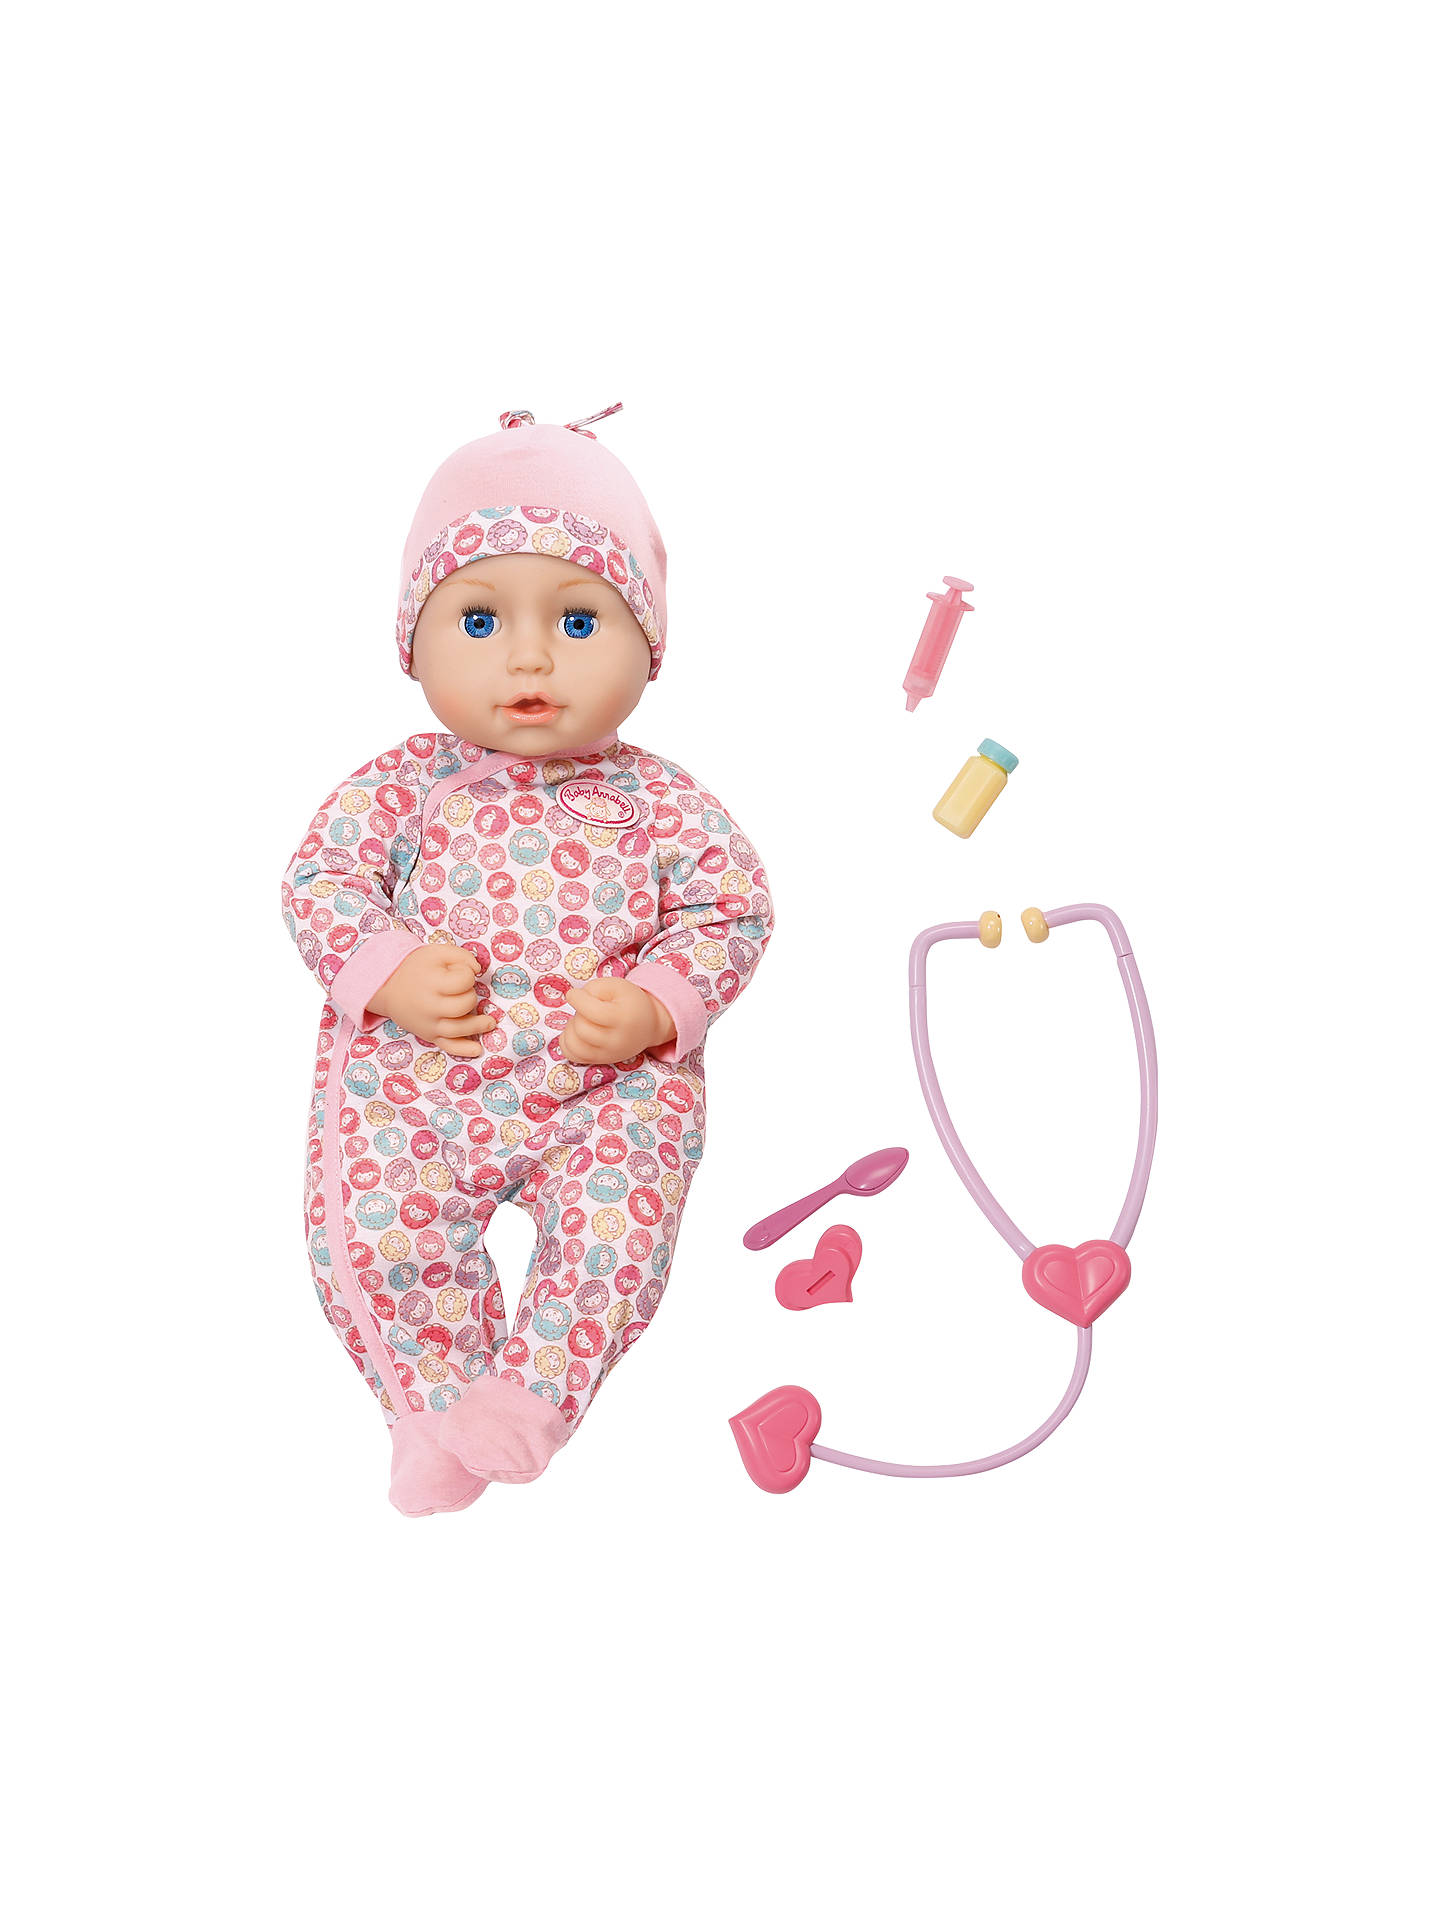 Zapf Baby Annabell Milly Feels Better Doll at John Lewis & Partners